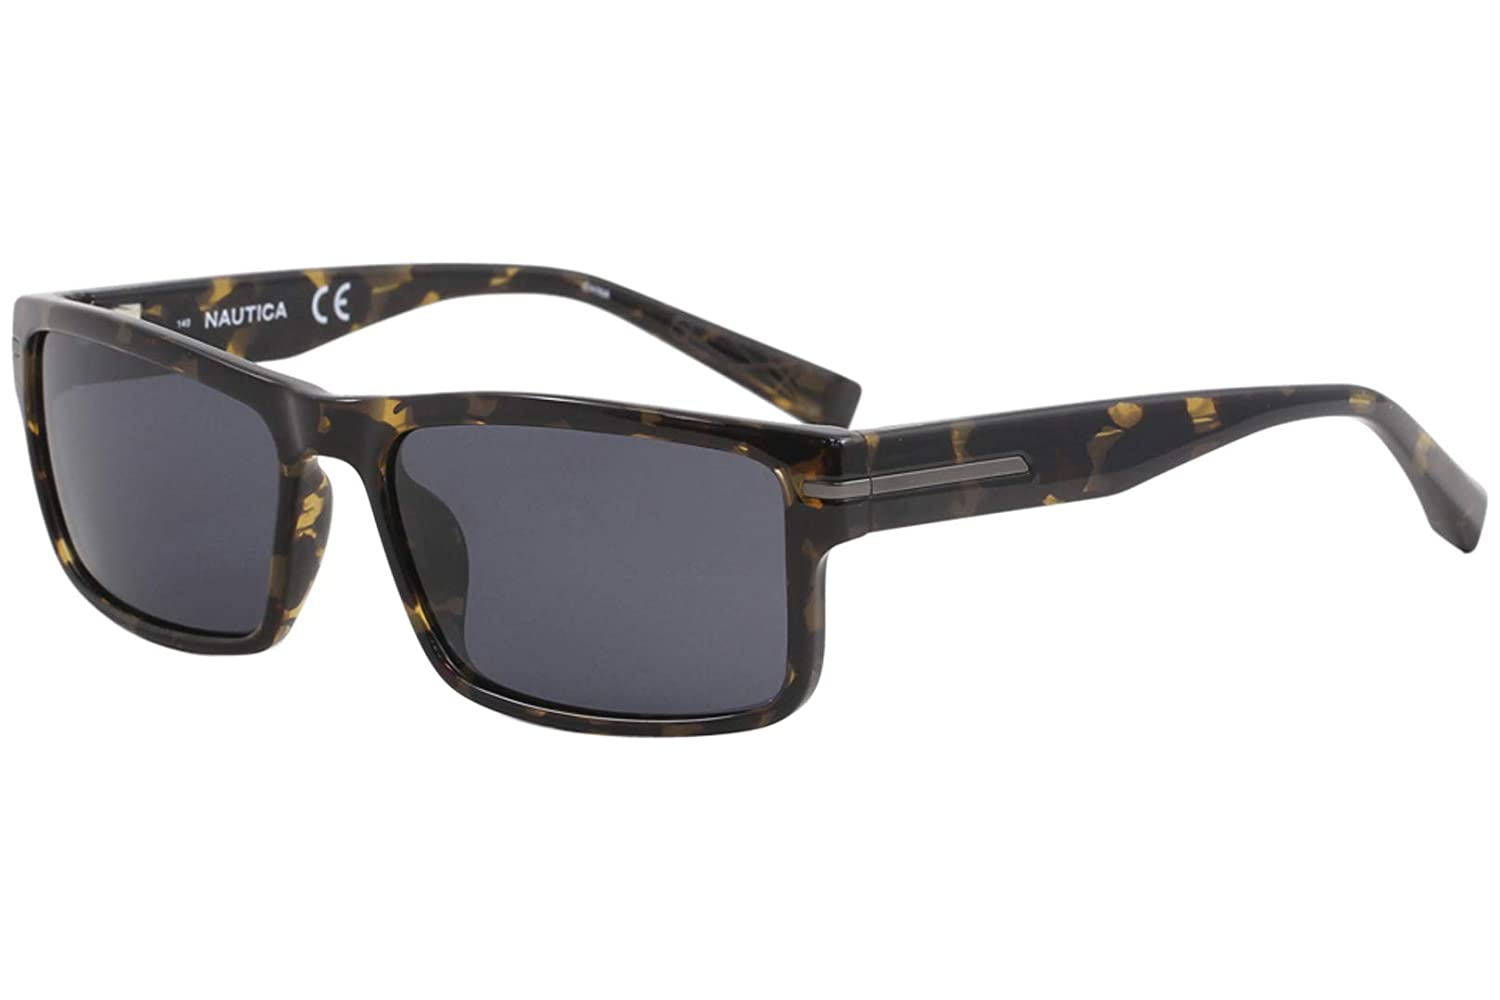 d758f9fcfb2 Nautica Sunglasses N6186S 282 Tokyo Tortoise 58 17 140 at Amazon Men s  Clothing store